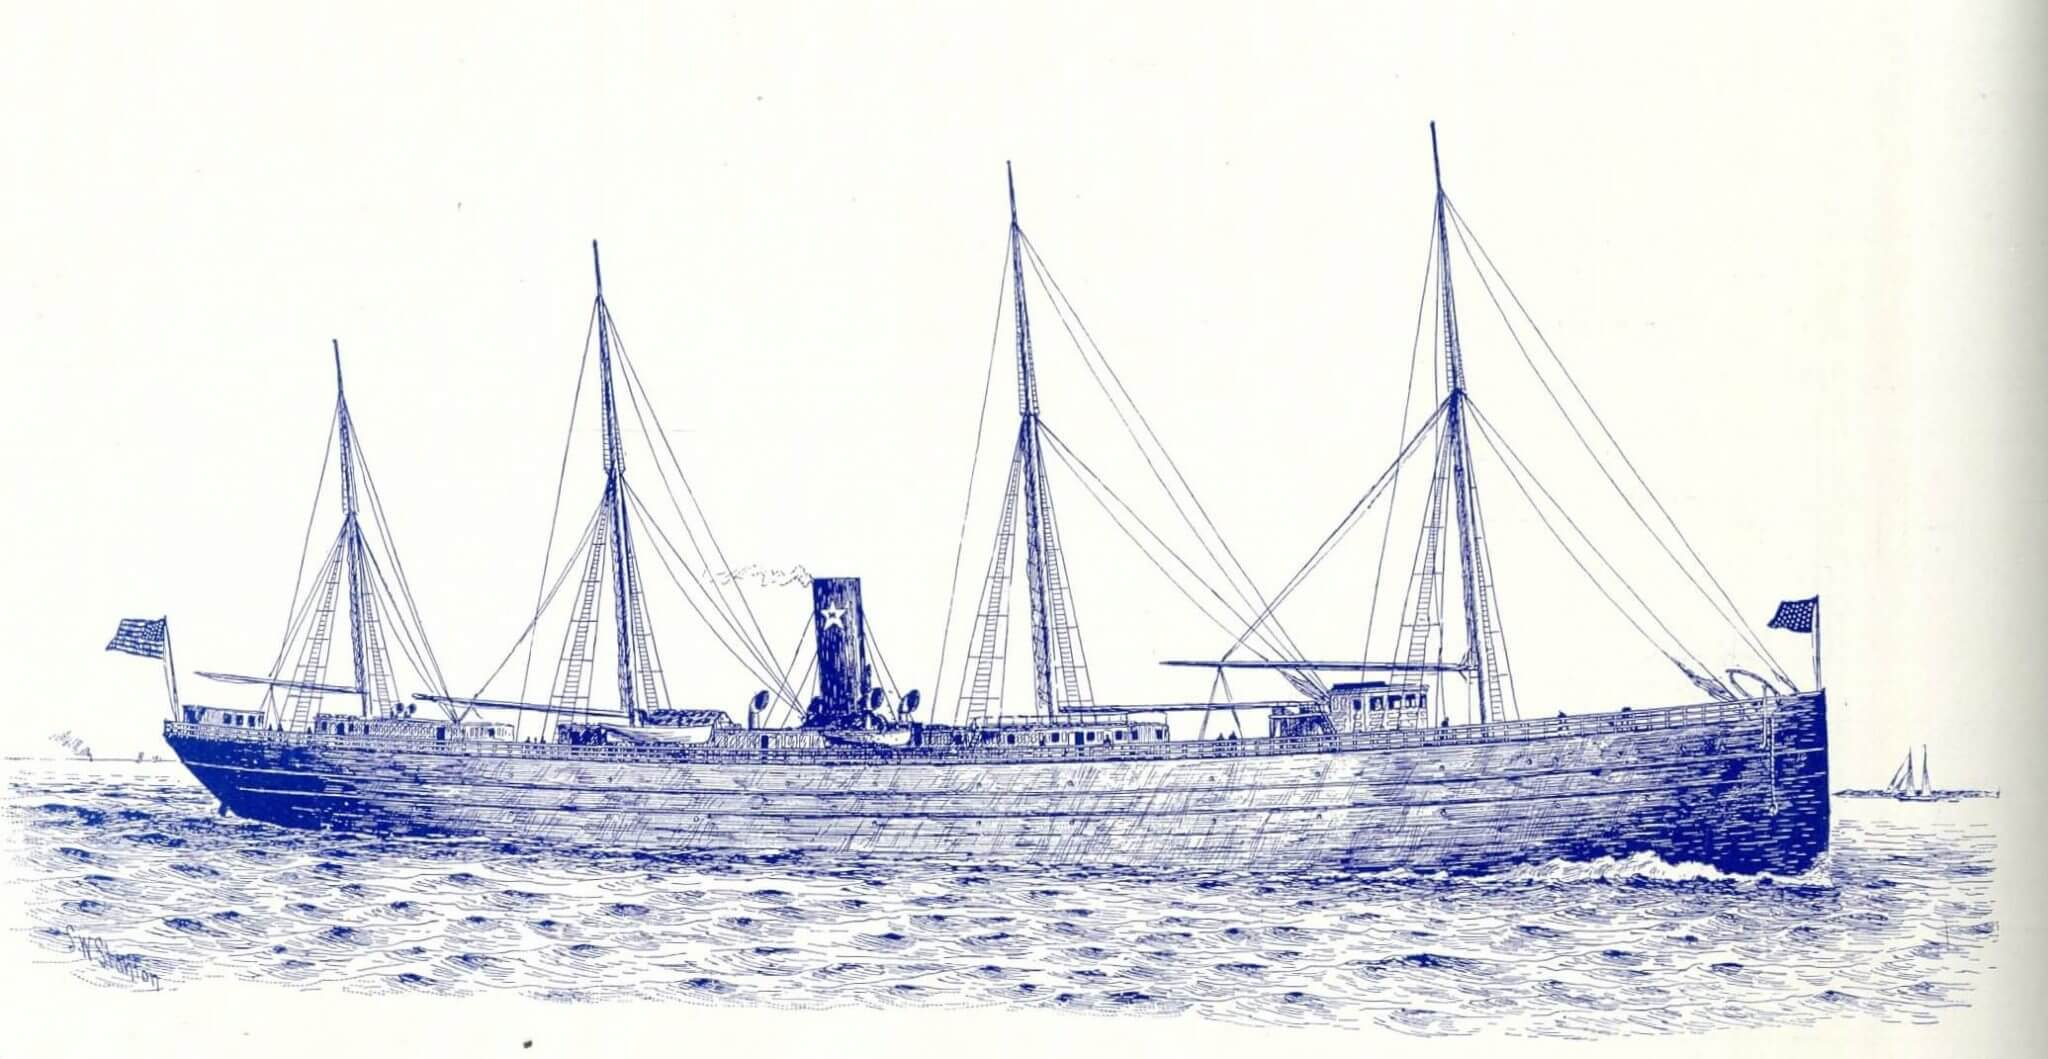 A sketch of the Excelsior.